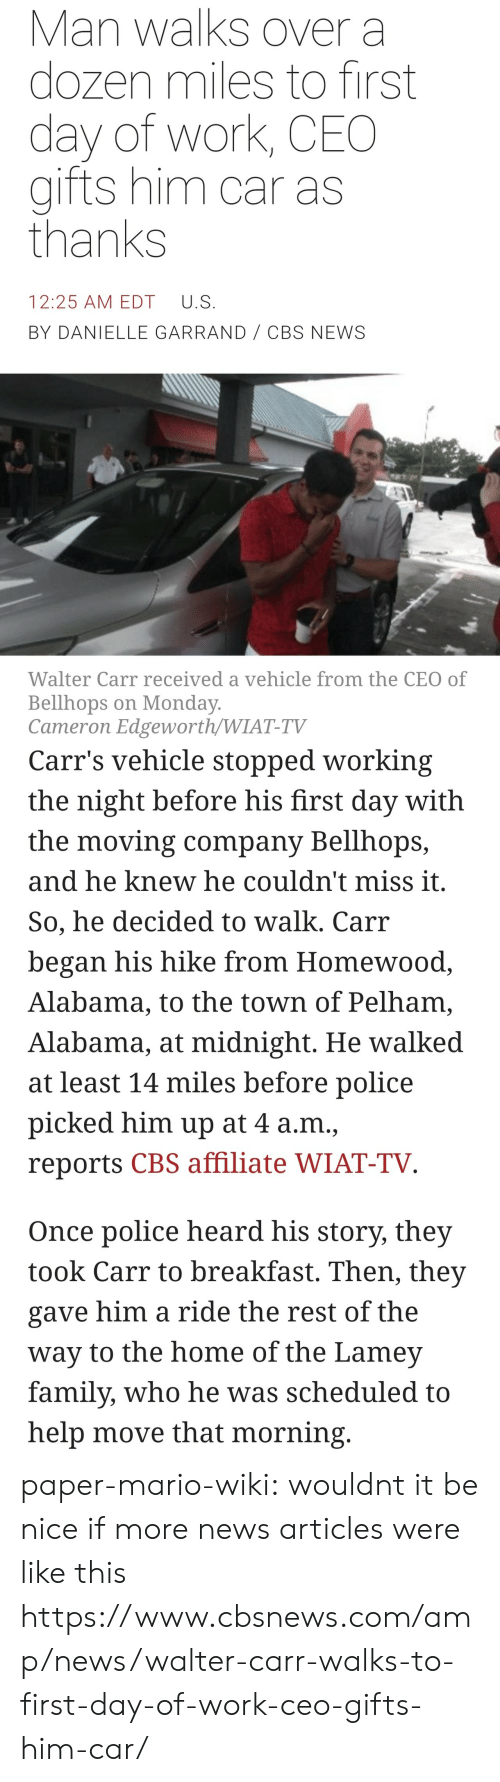 Mario Wiki: Man walks over a  dozen miles to first  day of work, CEO  gifts him car as  thanks  12:25 AM EDT U.S  BY DANIELLE GARRAND CBS NEWS  Walter Carr received a vehicle from the CEO of  Bellhops on Monday  Cameron Edgeworth/WIAT-TV   Carr's vehicle stopped working  the night before his first day with  the moving company Bellhops,  and he knew he couldn't miss it  So, he decided to walk. Carr  began his hike from Homewood  Alabama, to the town of Pelham,  Alabama, at midnight. He walked  at least 14 miles before police  picked him up at 4 a.m.,  reports CBS affiliate WIAT-TV  Once police heard his story, they  took Carr to breakfast. Then, they  gave him a ride the rest of the  way to the home of the Lamev  family, who he was scheduled to  help move that morning paper-mario-wiki:  wouldnt it be nice if more news articles were like this  https://www.cbsnews.com/amp/news/walter-carr-walks-to-first-day-of-work-ceo-gifts-him-car/